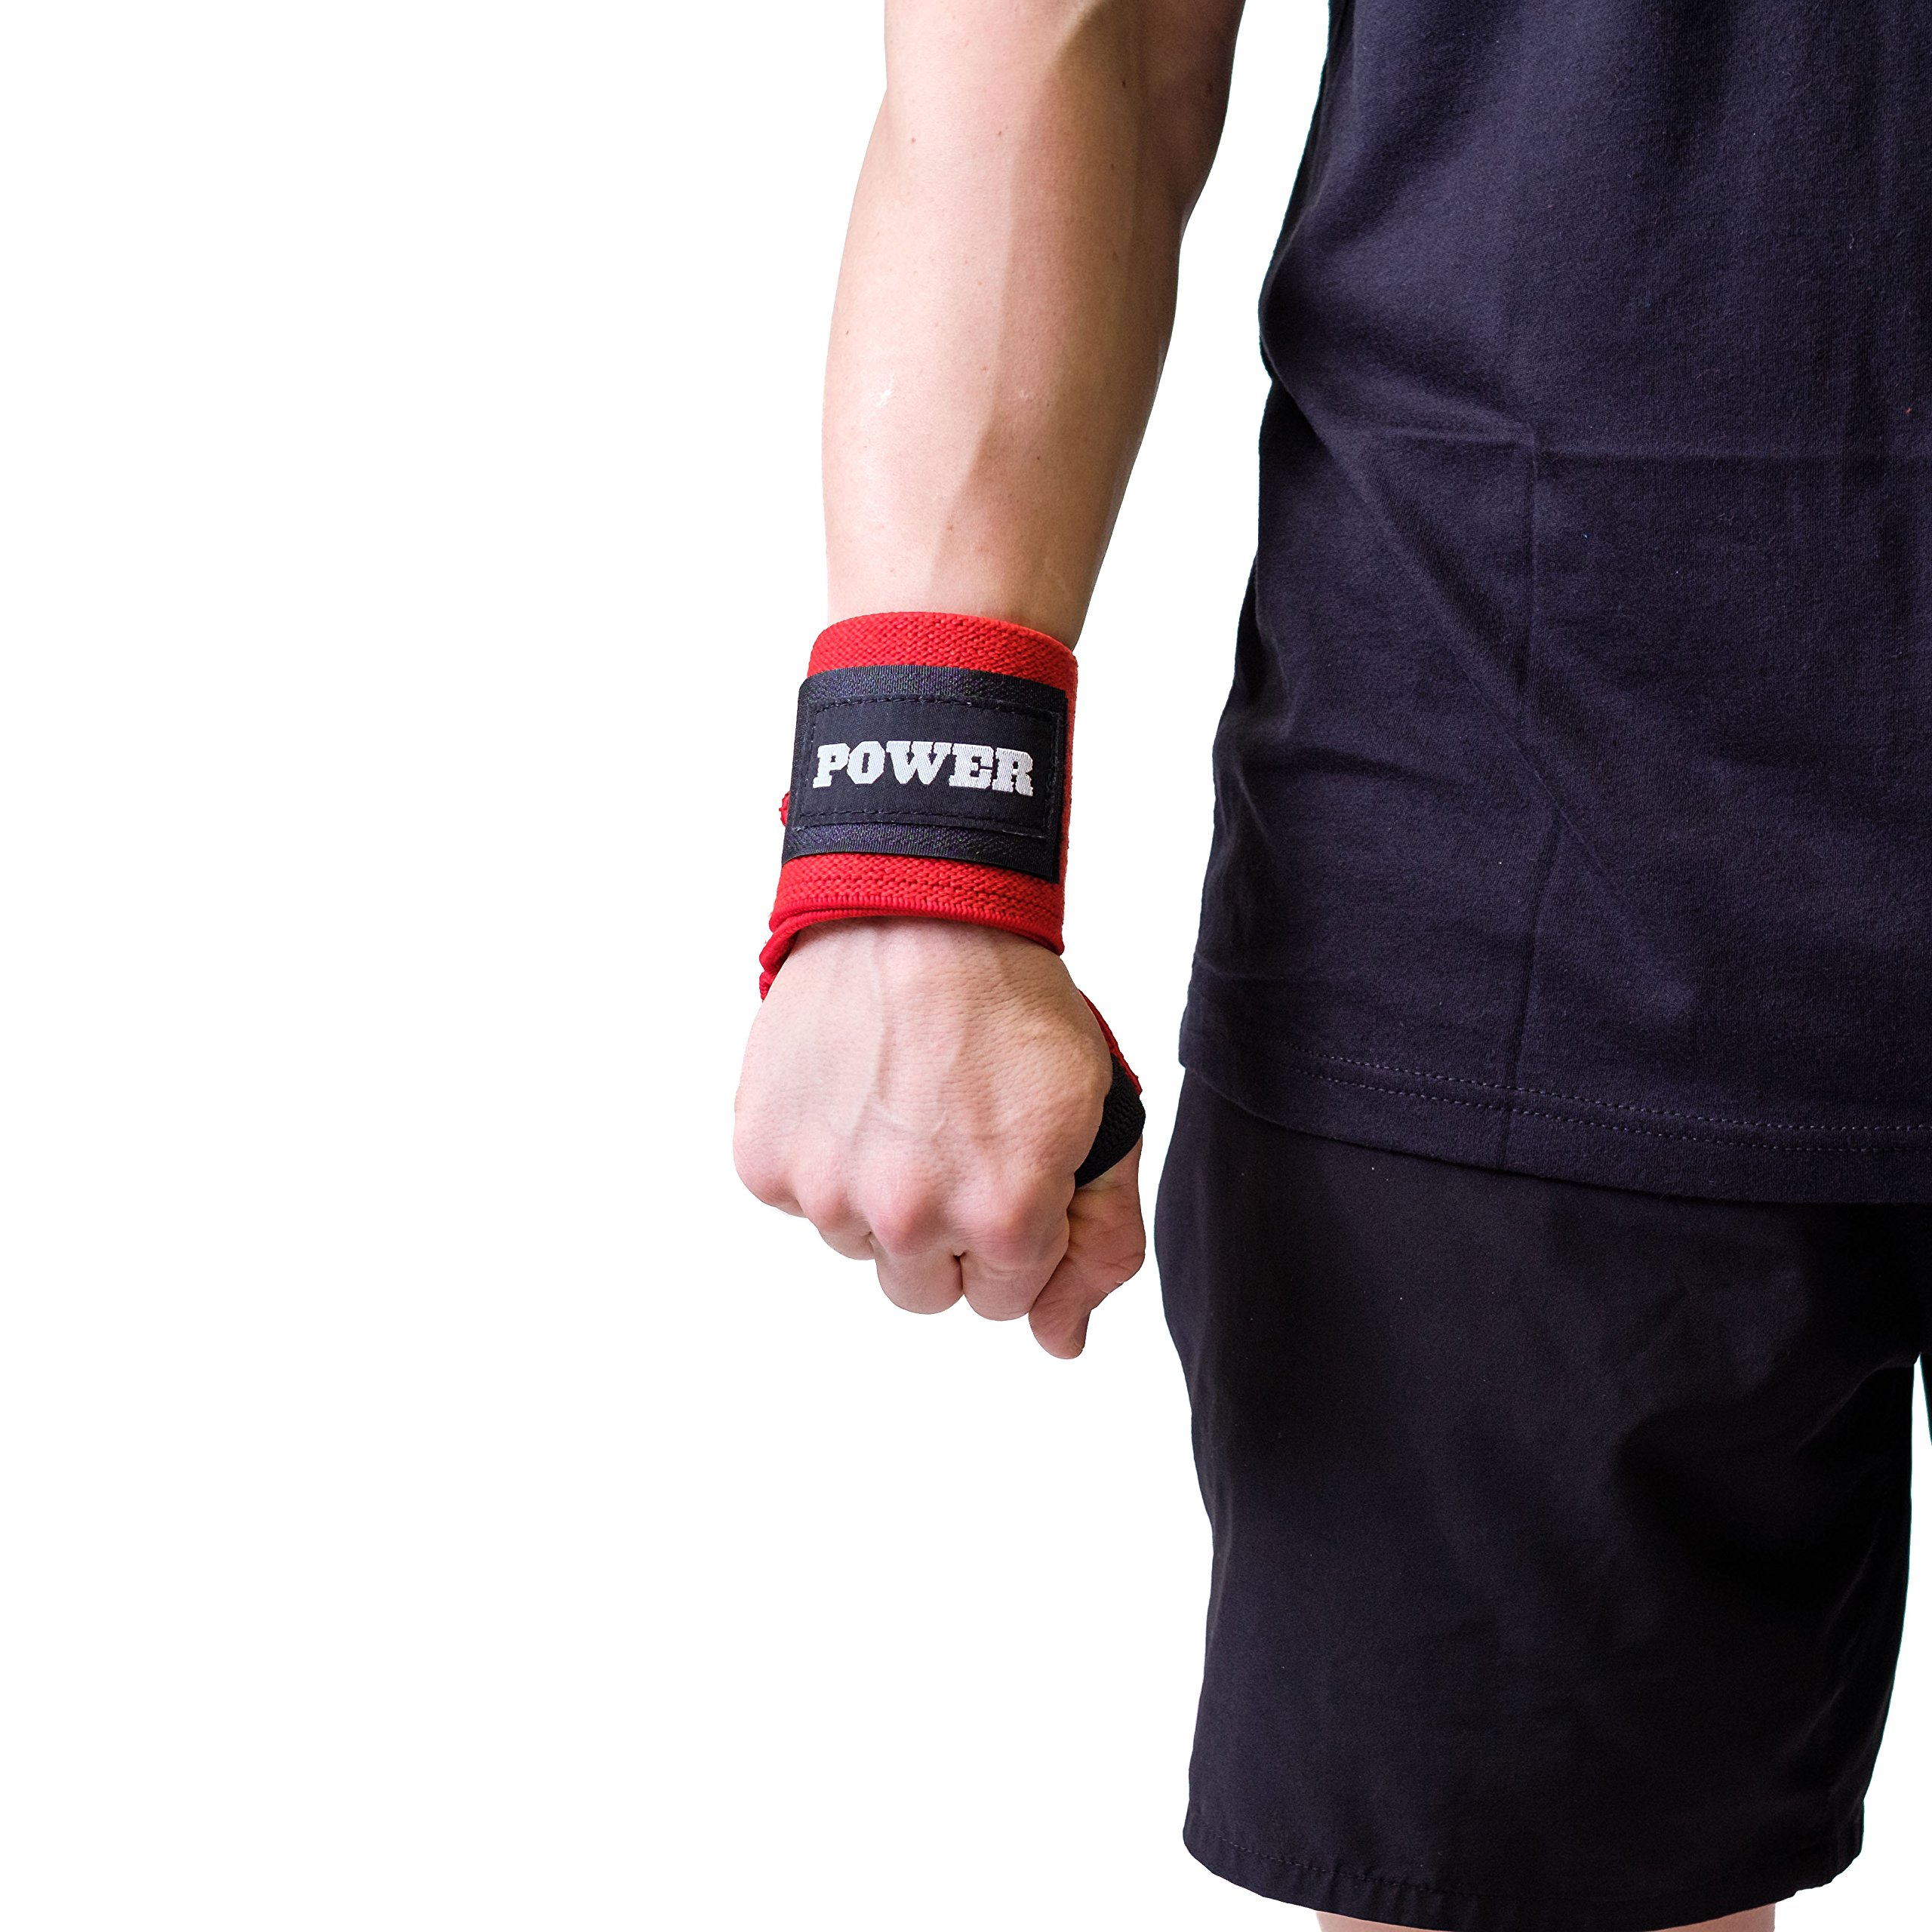 Sling Shot Power Wraps - Red